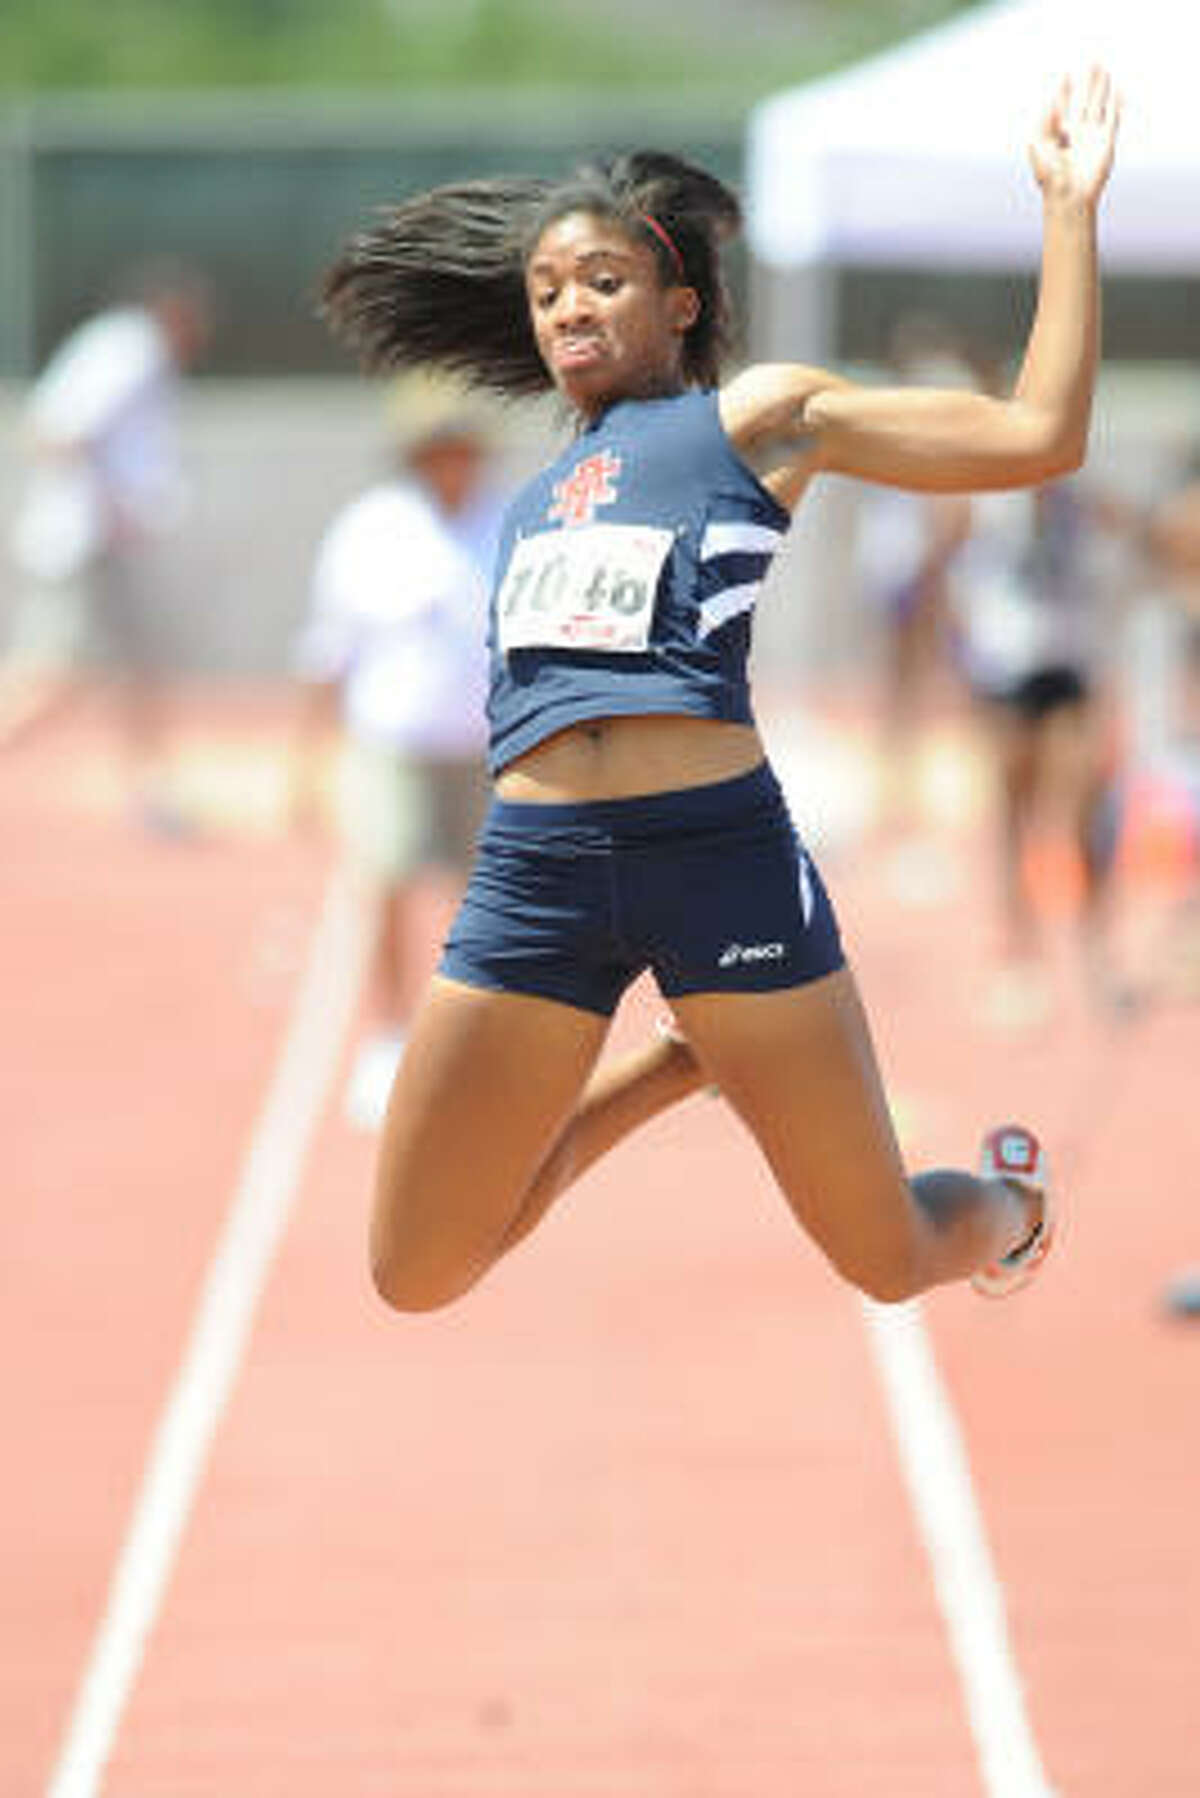 State track meet: Alief Taylor's Morgan Pressley competes in the long jump during the state track meet in Austin.